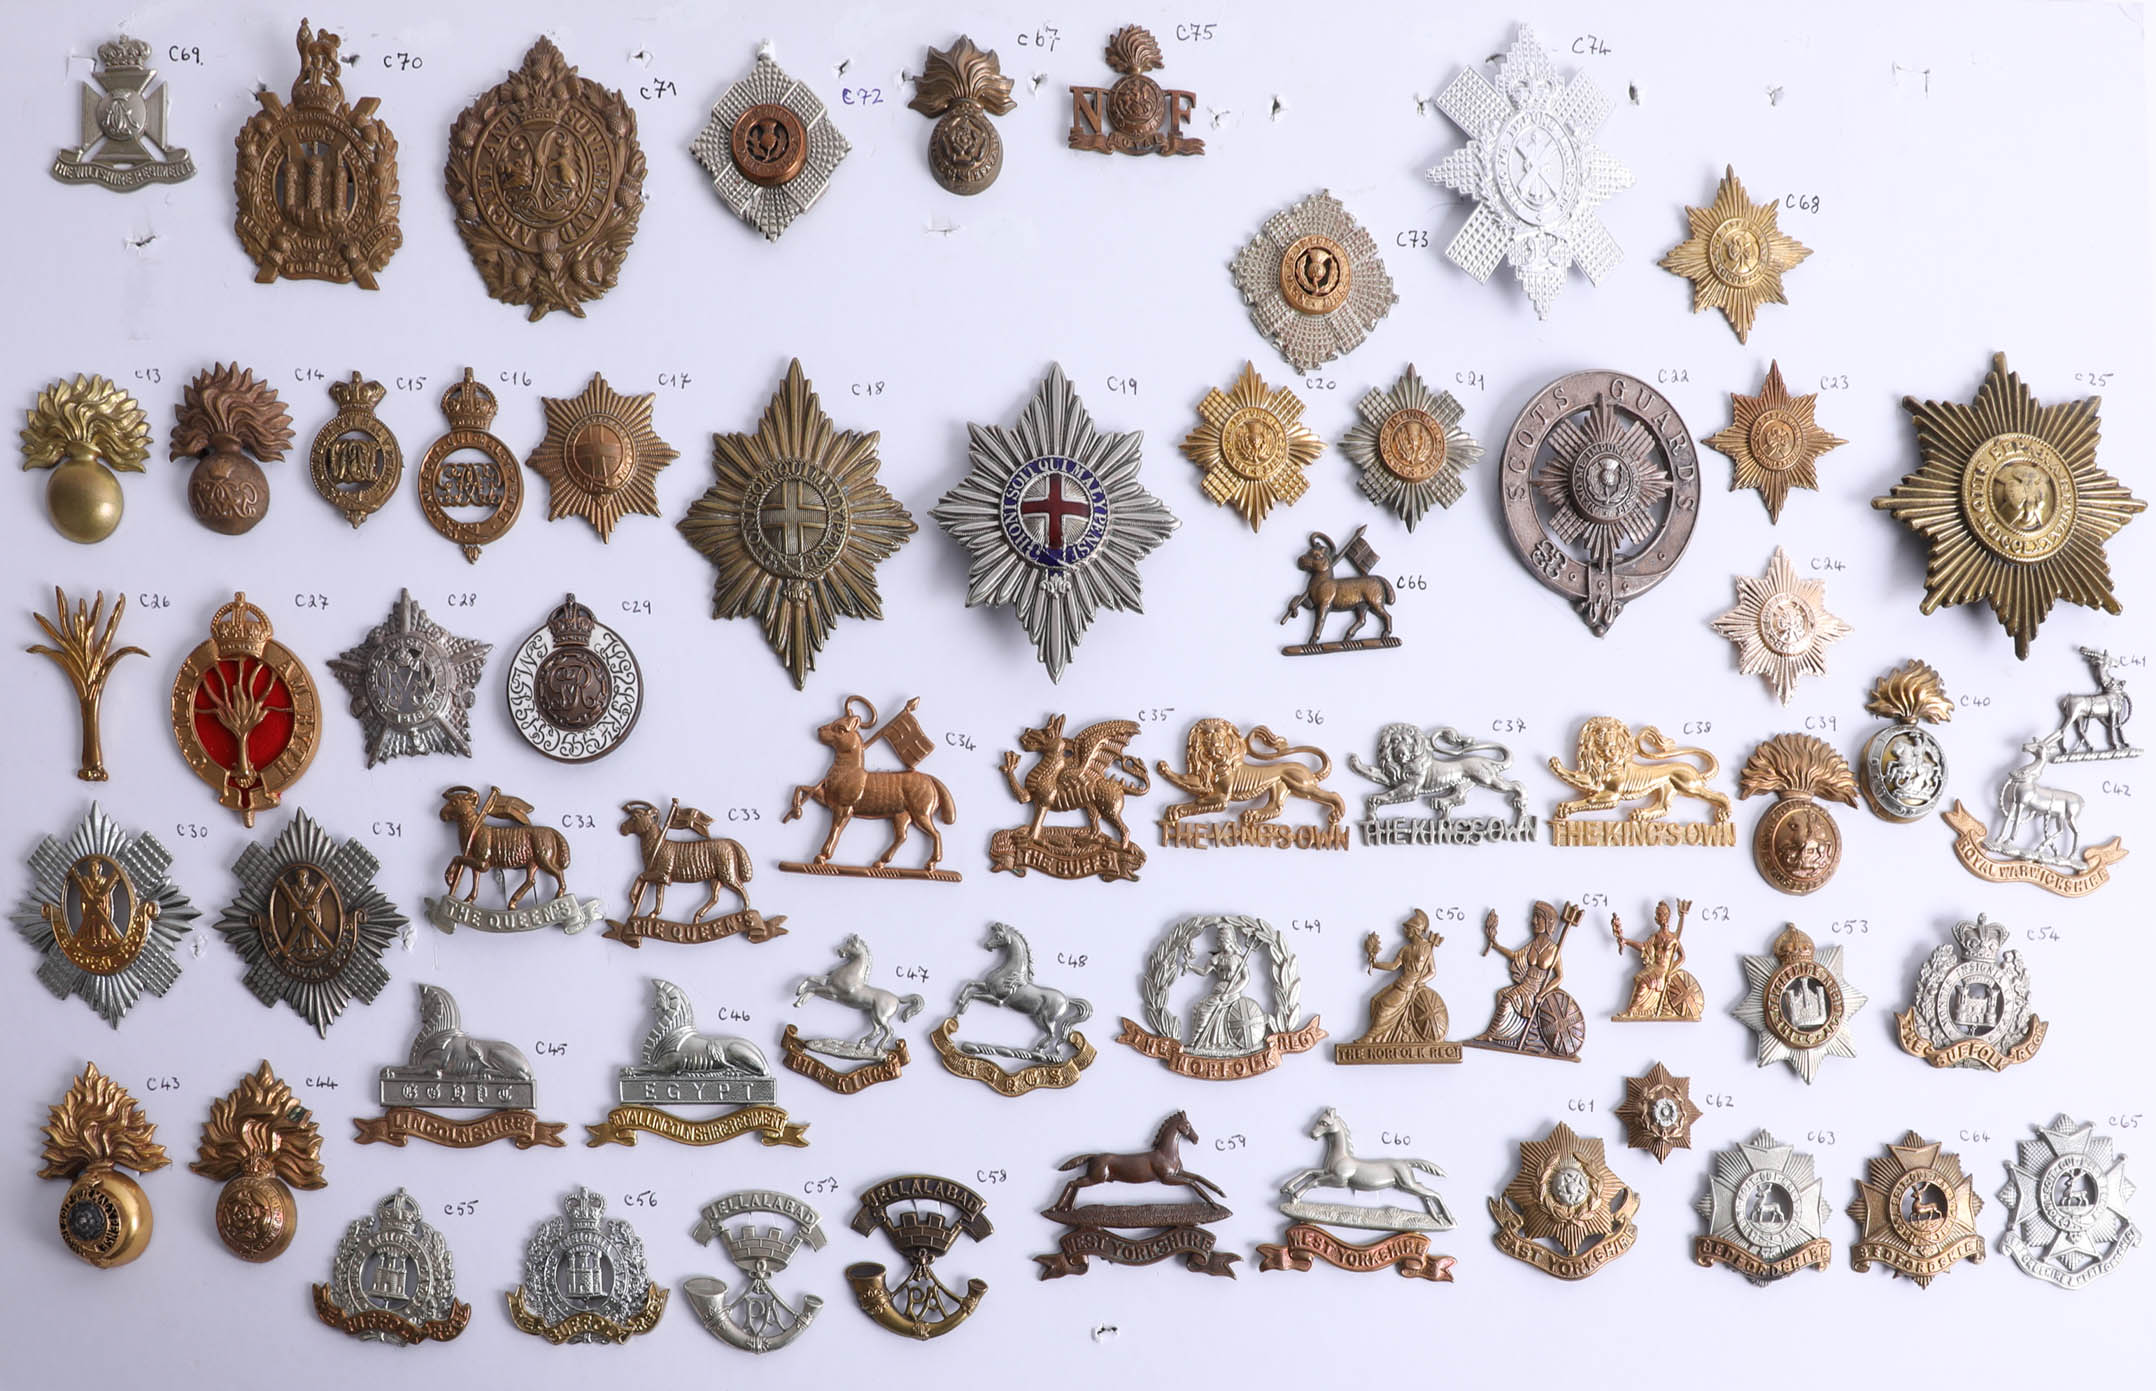 Lot 003 - A collection of approx. 63 military cap badges including Grenadier, Coldstream, Irish, Scots and